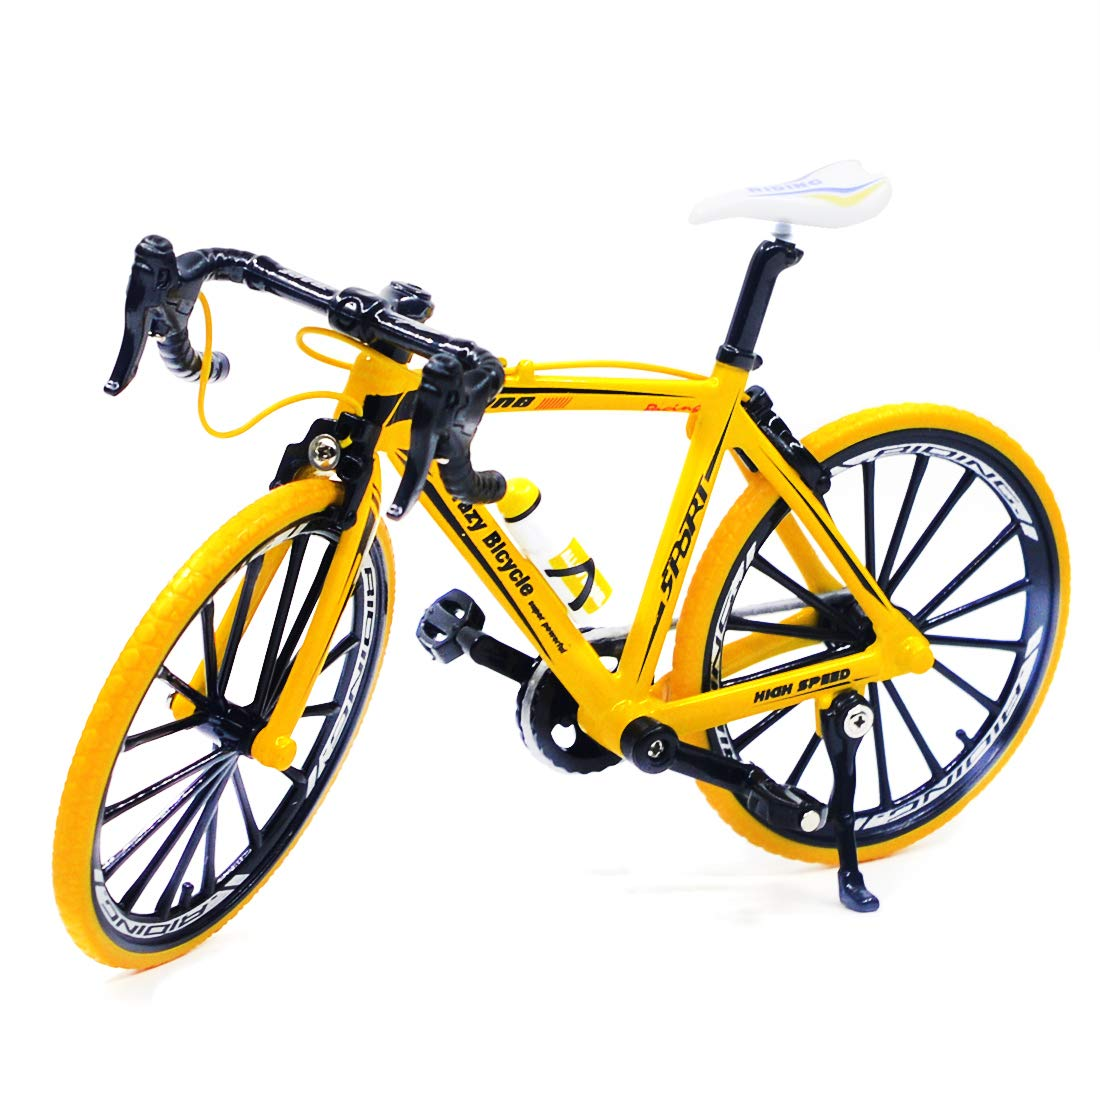 Ailejia Zinc Alloy Racing Bicycle Mountain Bike Mini Bicycle Model Cool Boy Toy Decoration Crafts for Home (Racing Bicycle Yellow)